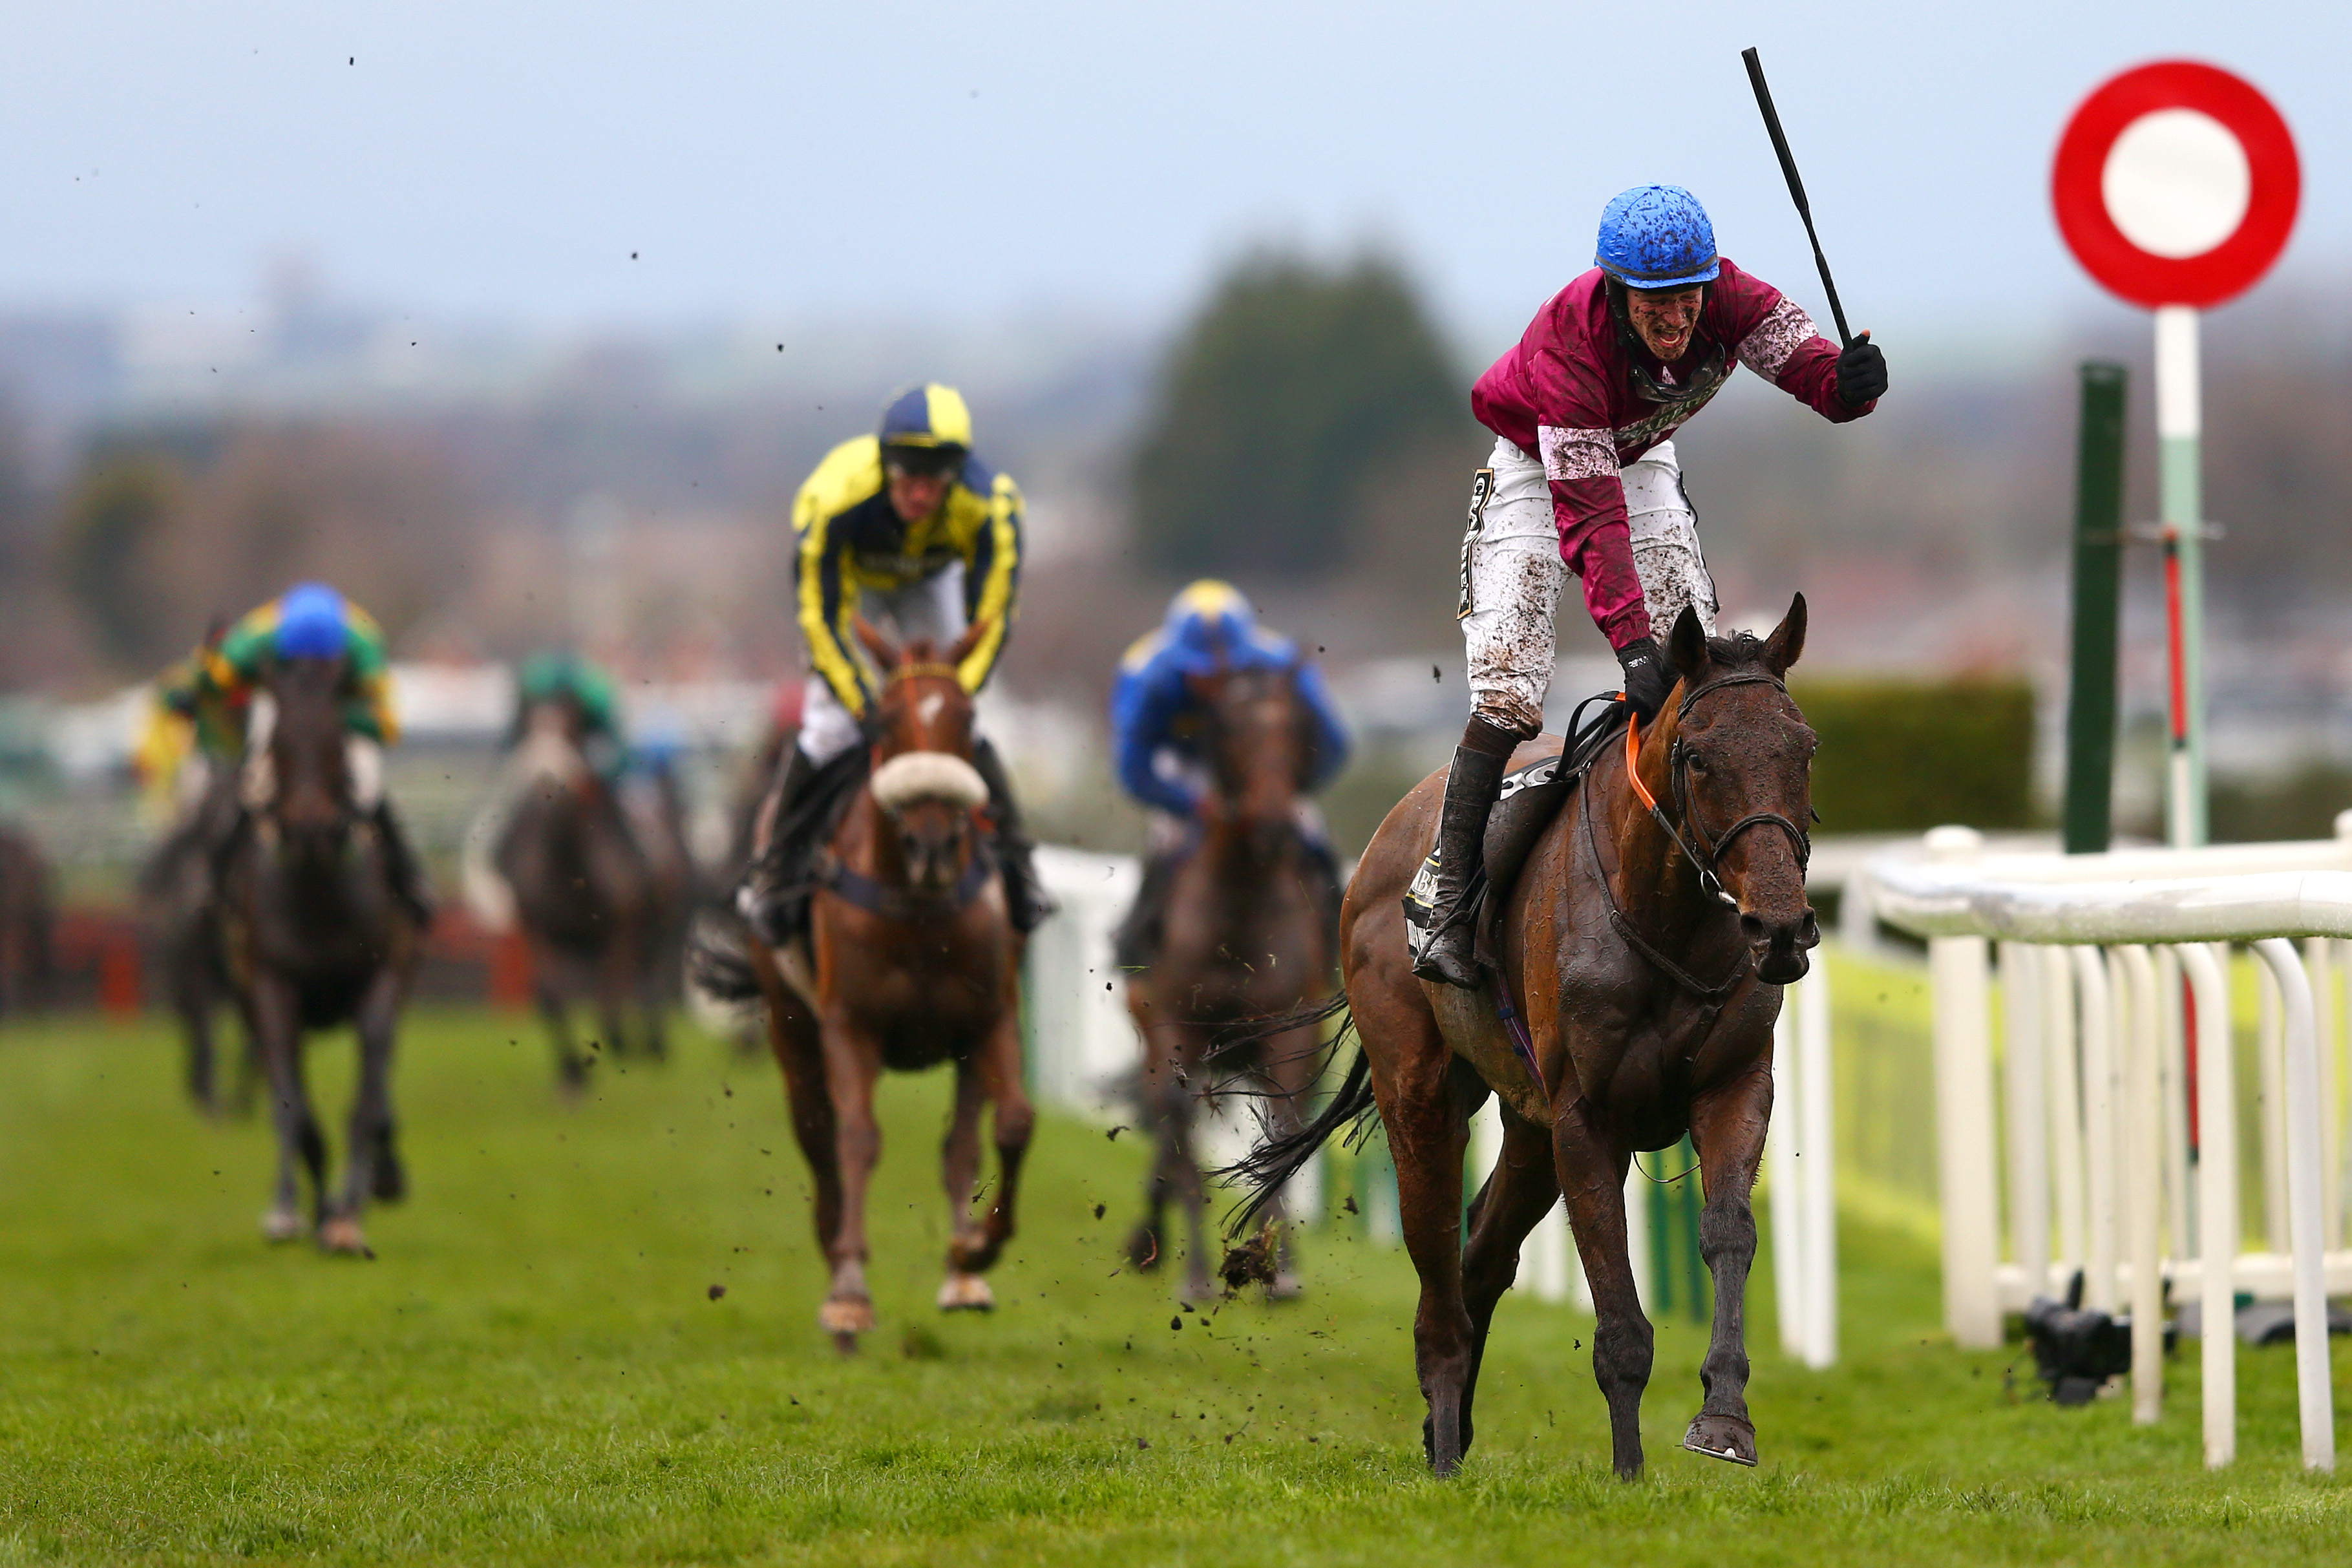 Rule The World wins the Grand National at Aintree ahead of The Last Samuri